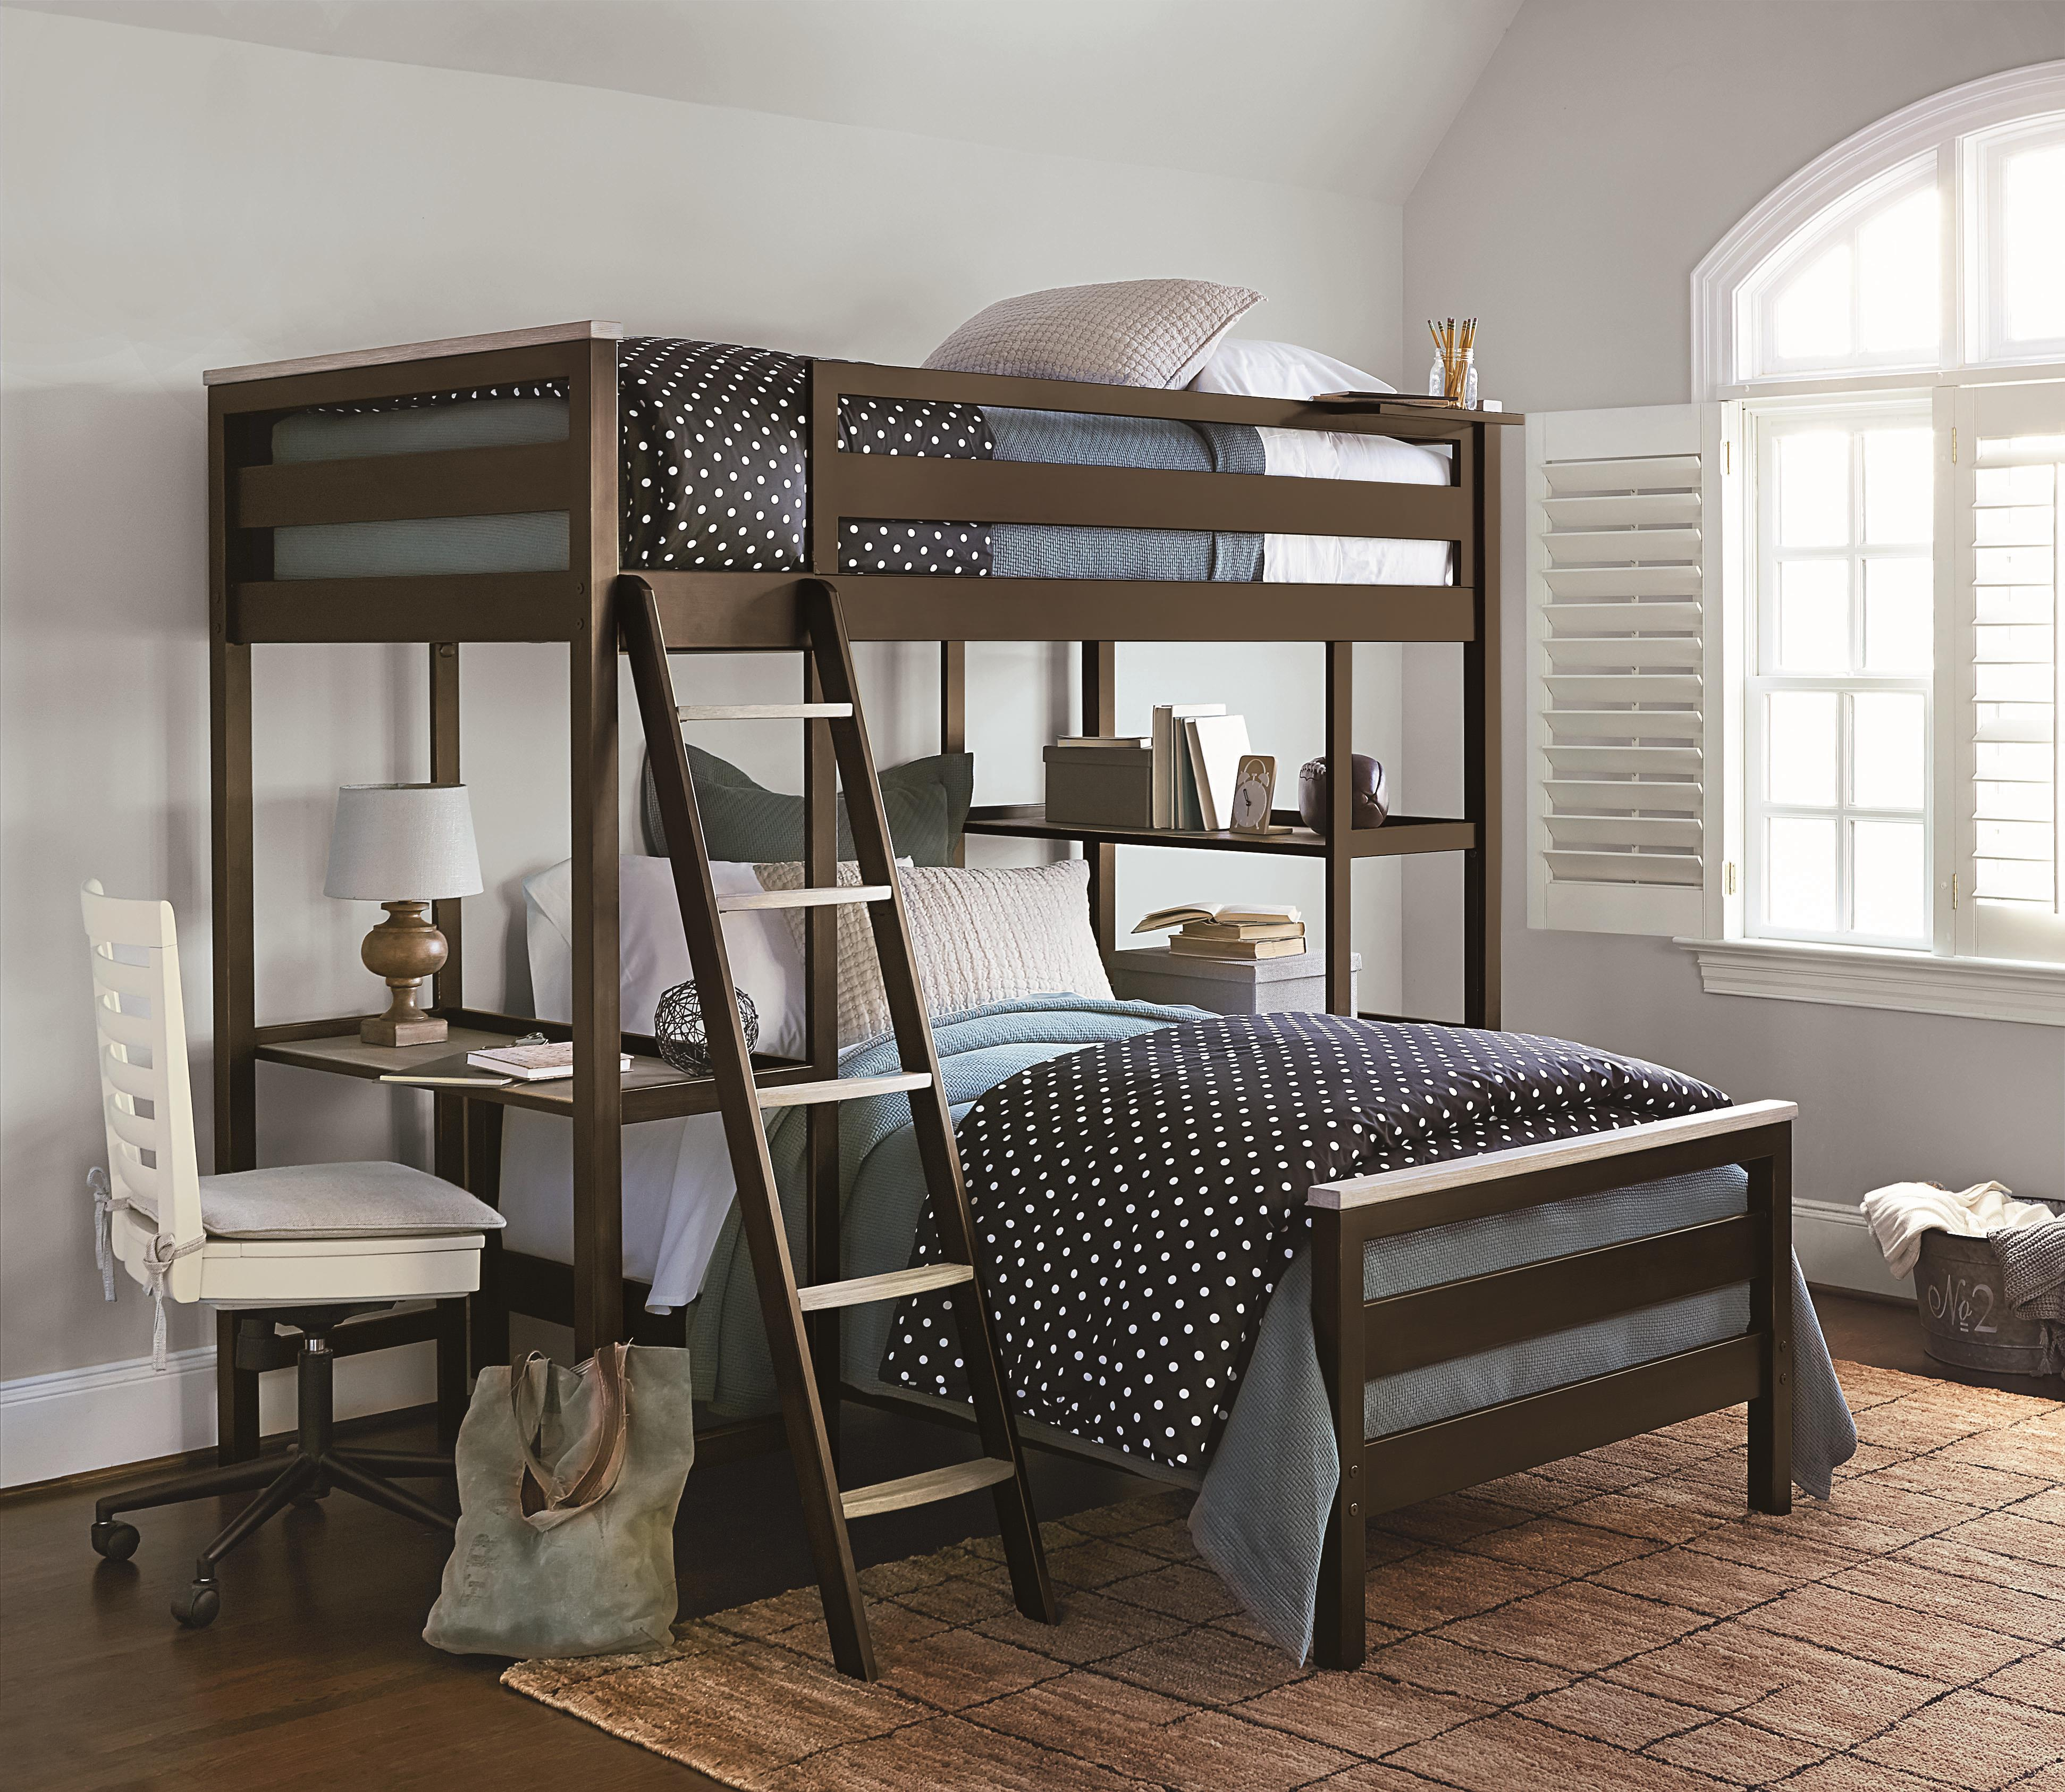 Bunk Beds Jacksonville Fl Inspiring Children S Room And Study Table